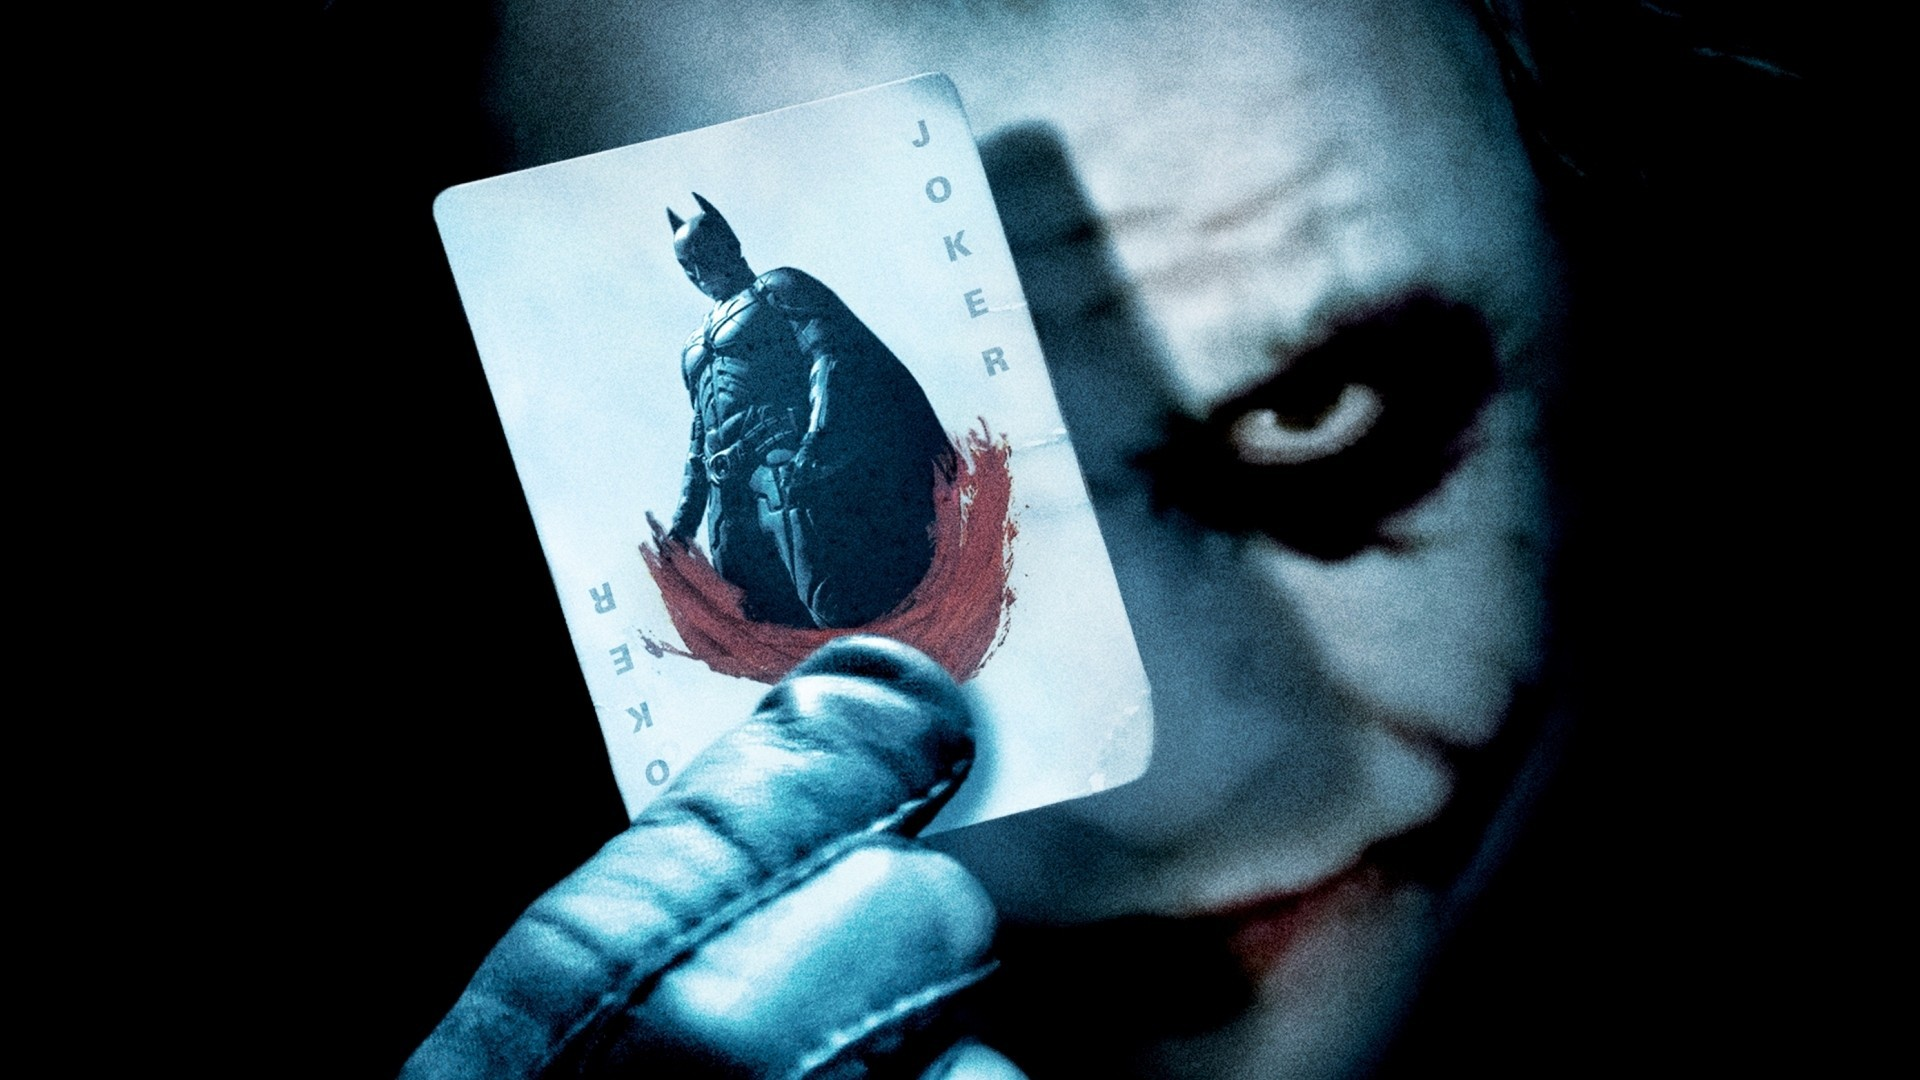 Batman Joker Card 2352.57 Kb